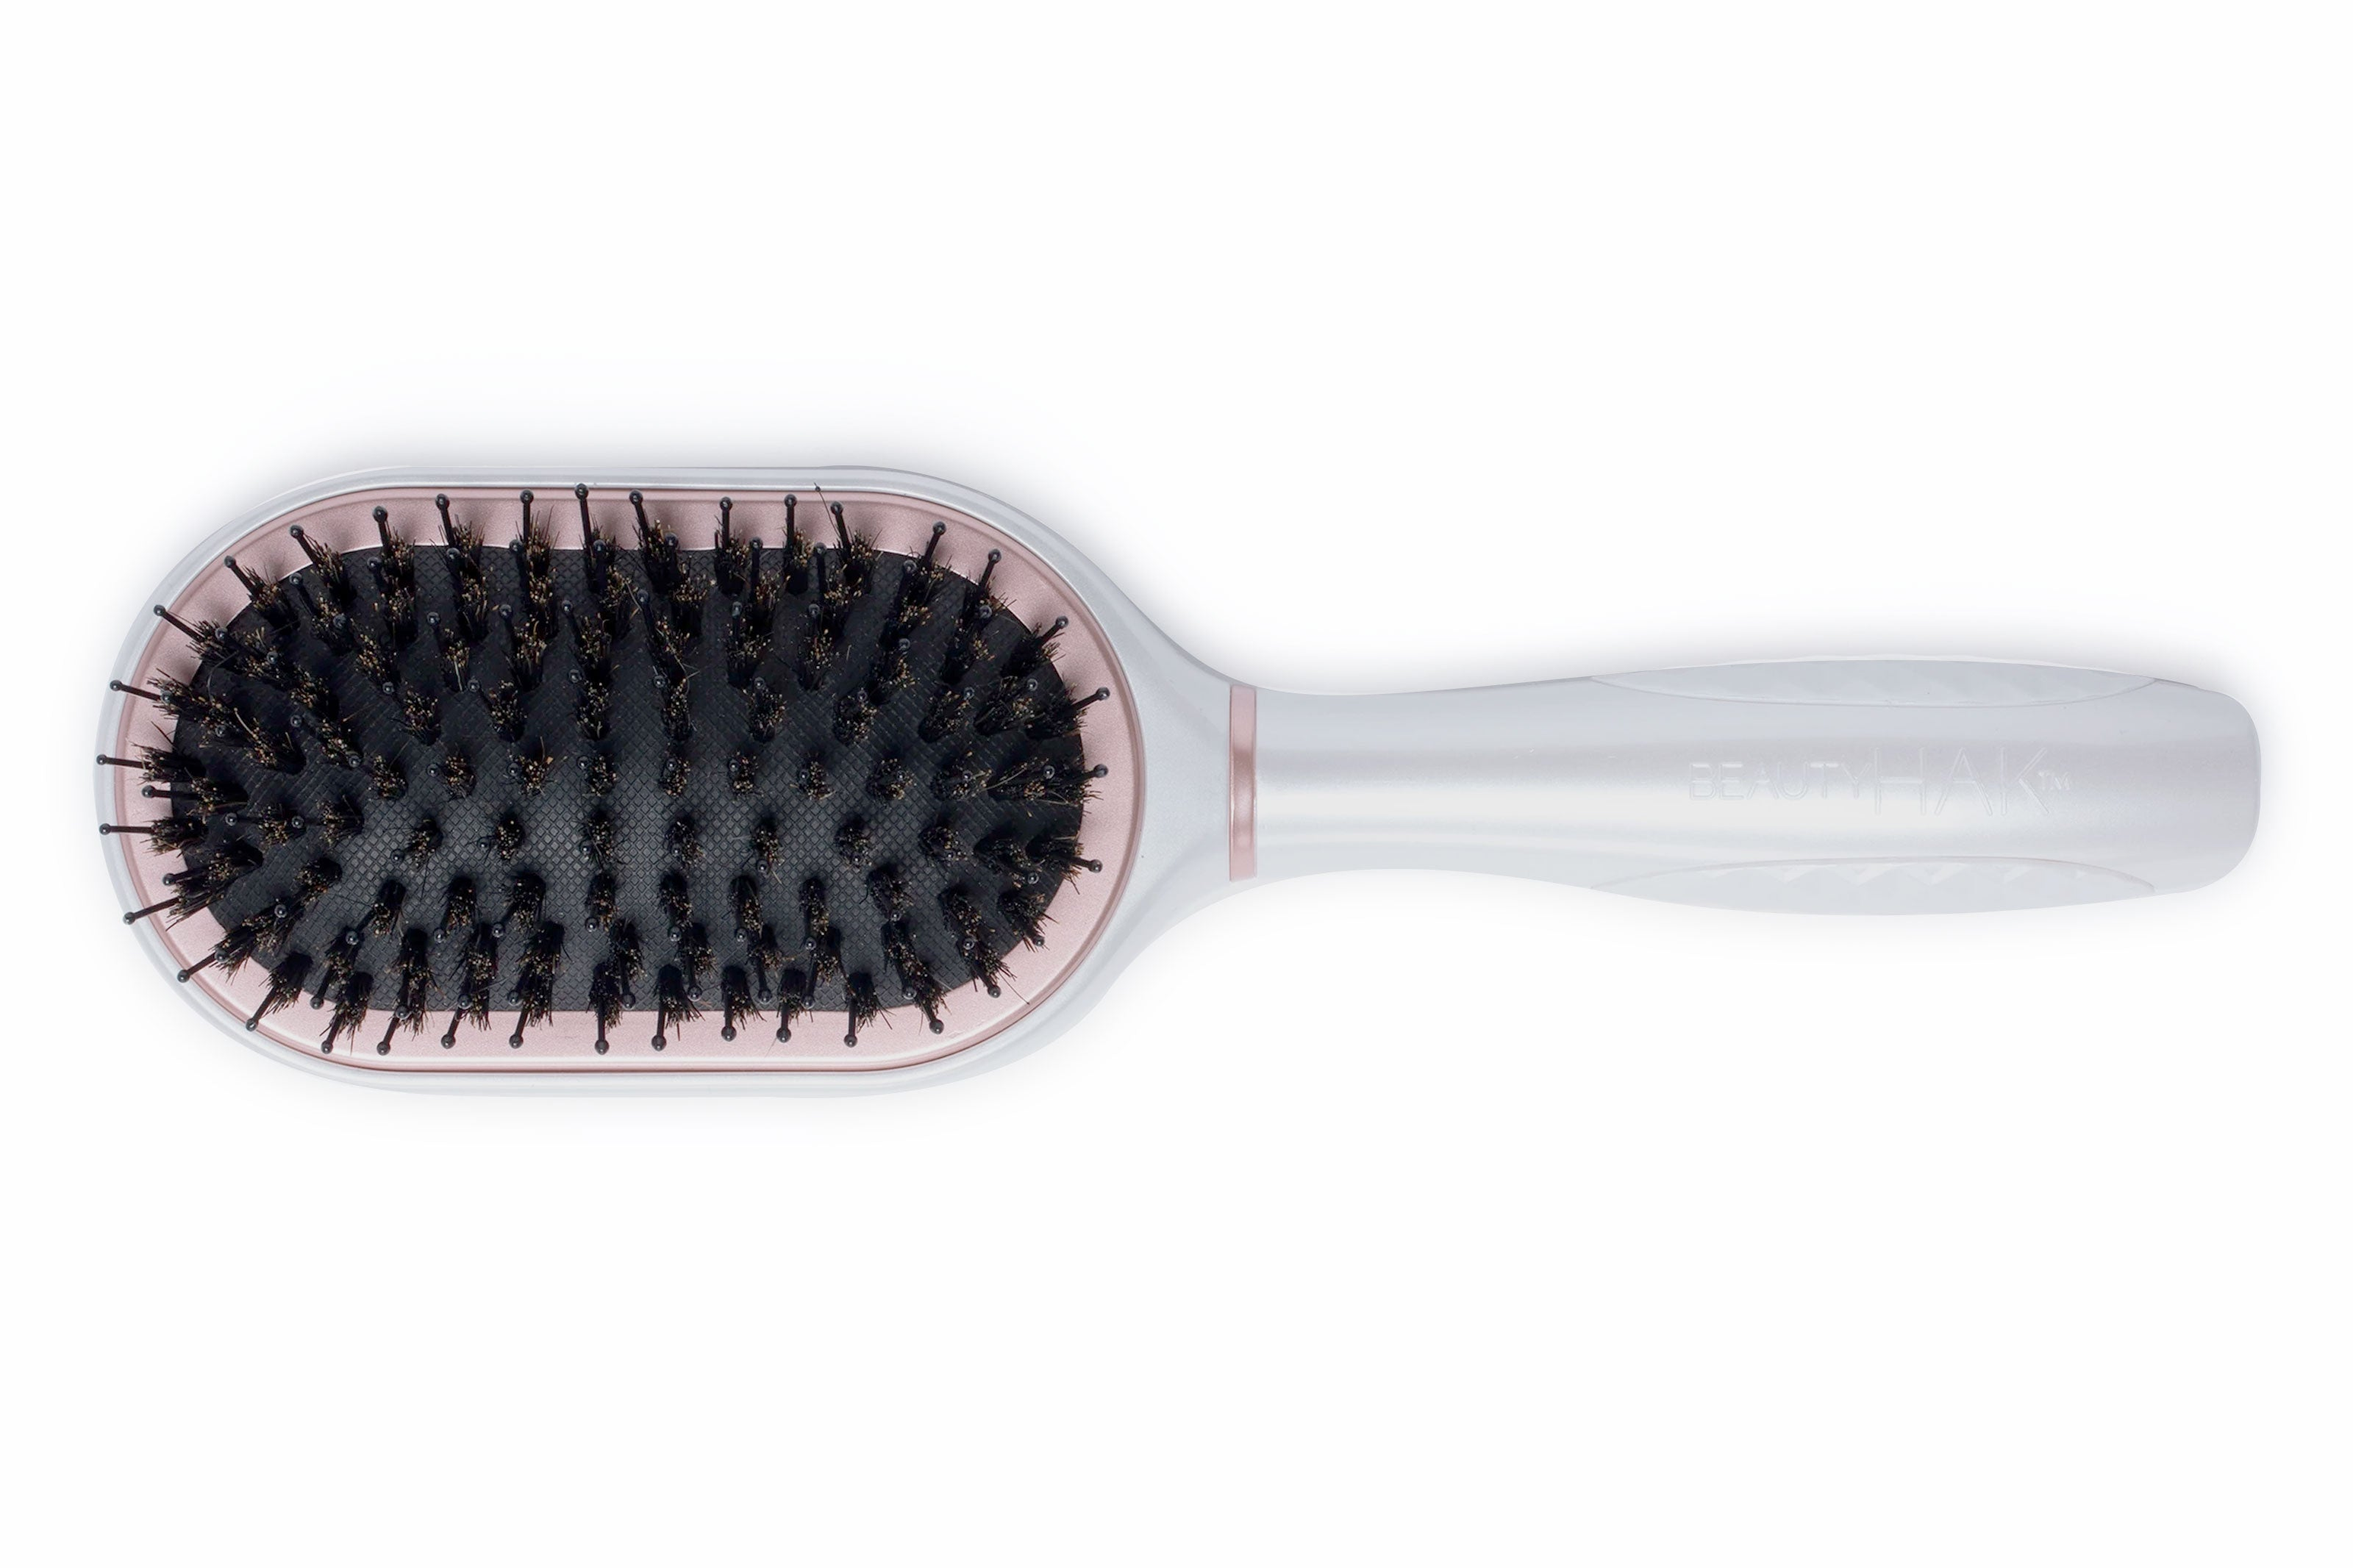 The NEW PAKBrush